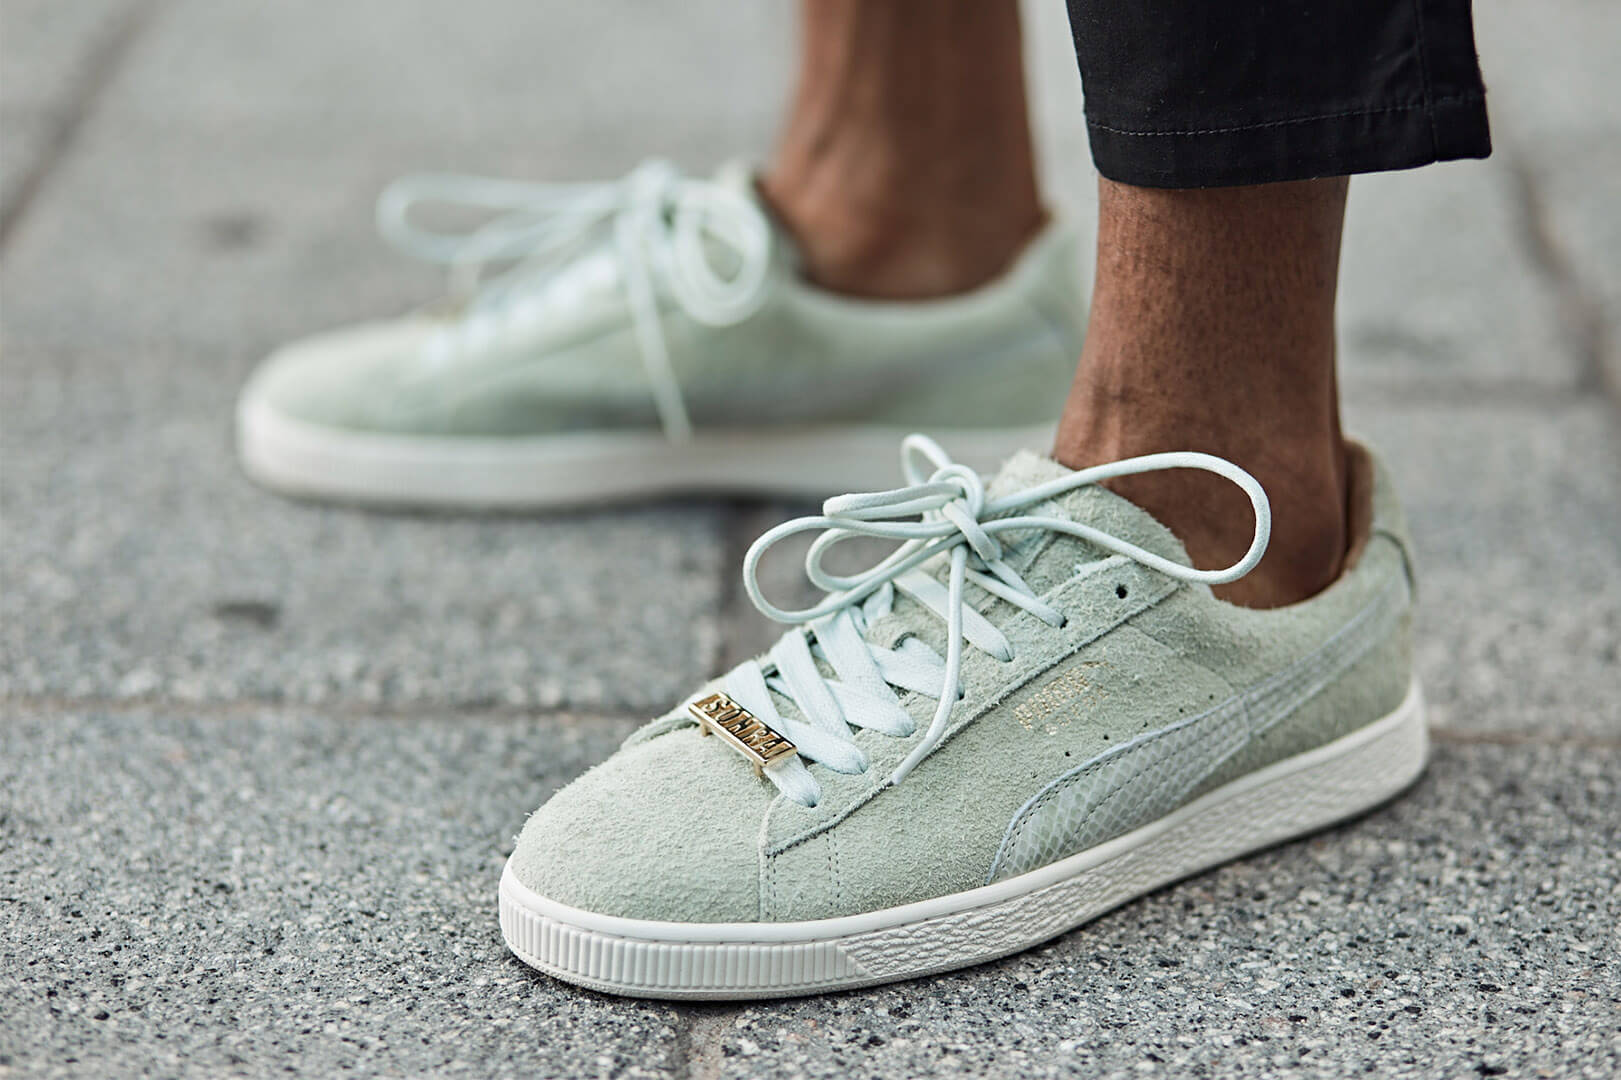 brand new 6a227 9b822 PUMA Suede 50th Anniversary: The Year of the Suede